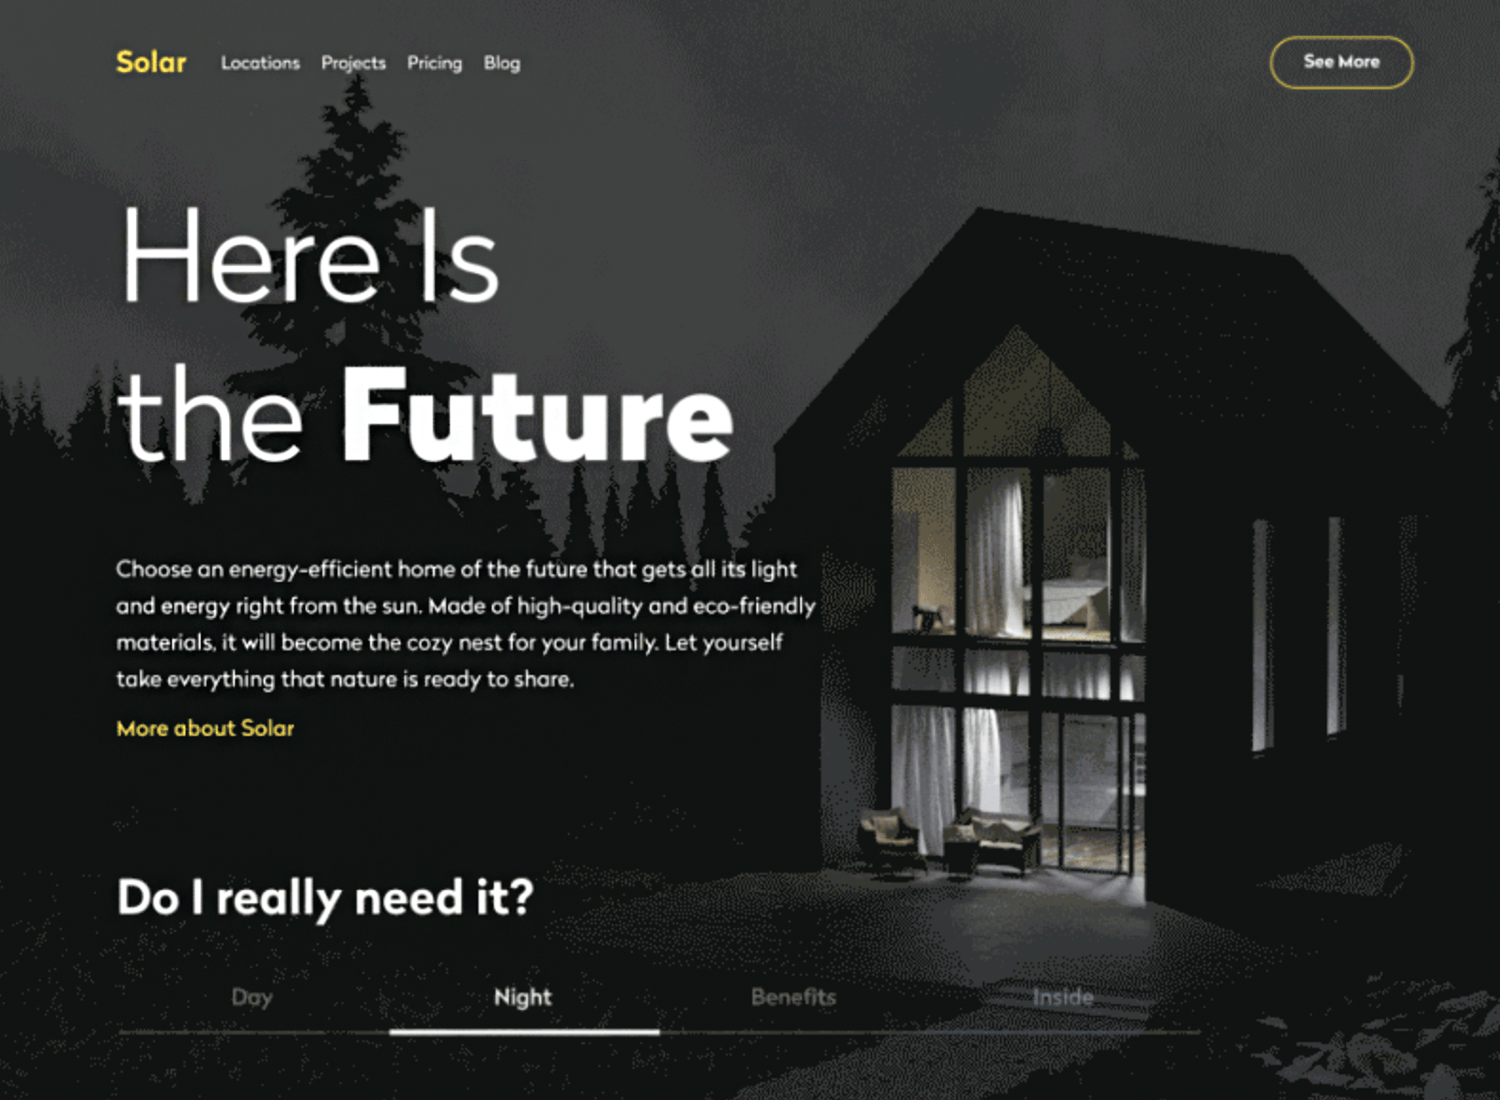 hero image website example with parallax scrolling